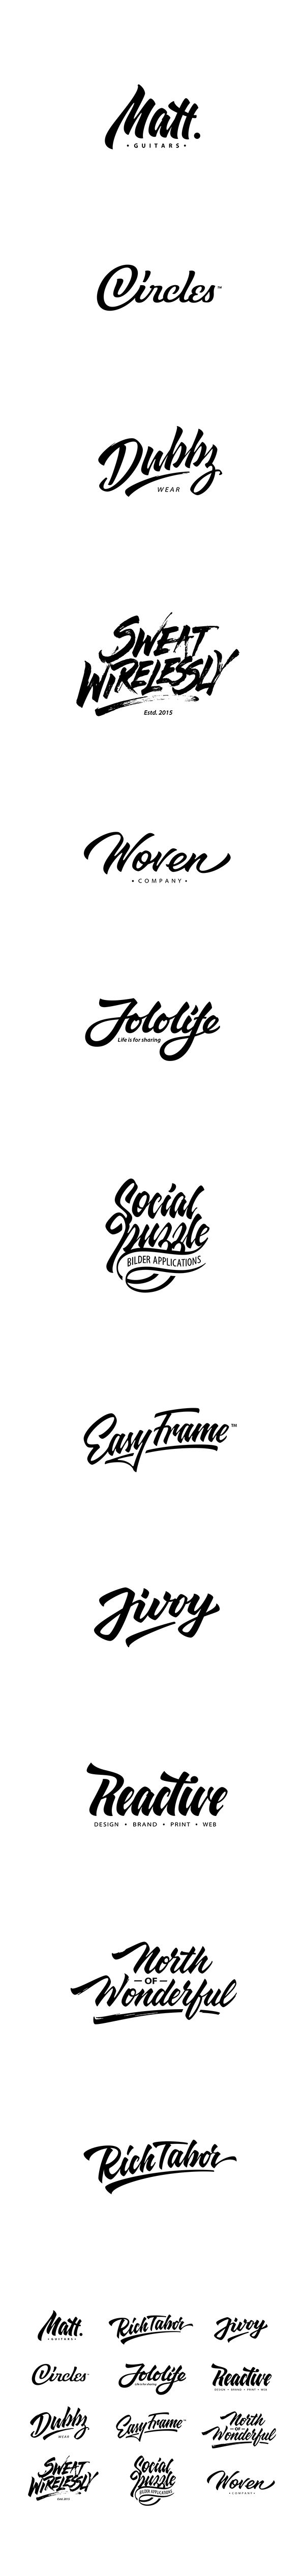 I am glad to share with you part of my lettering and calligraphy works !